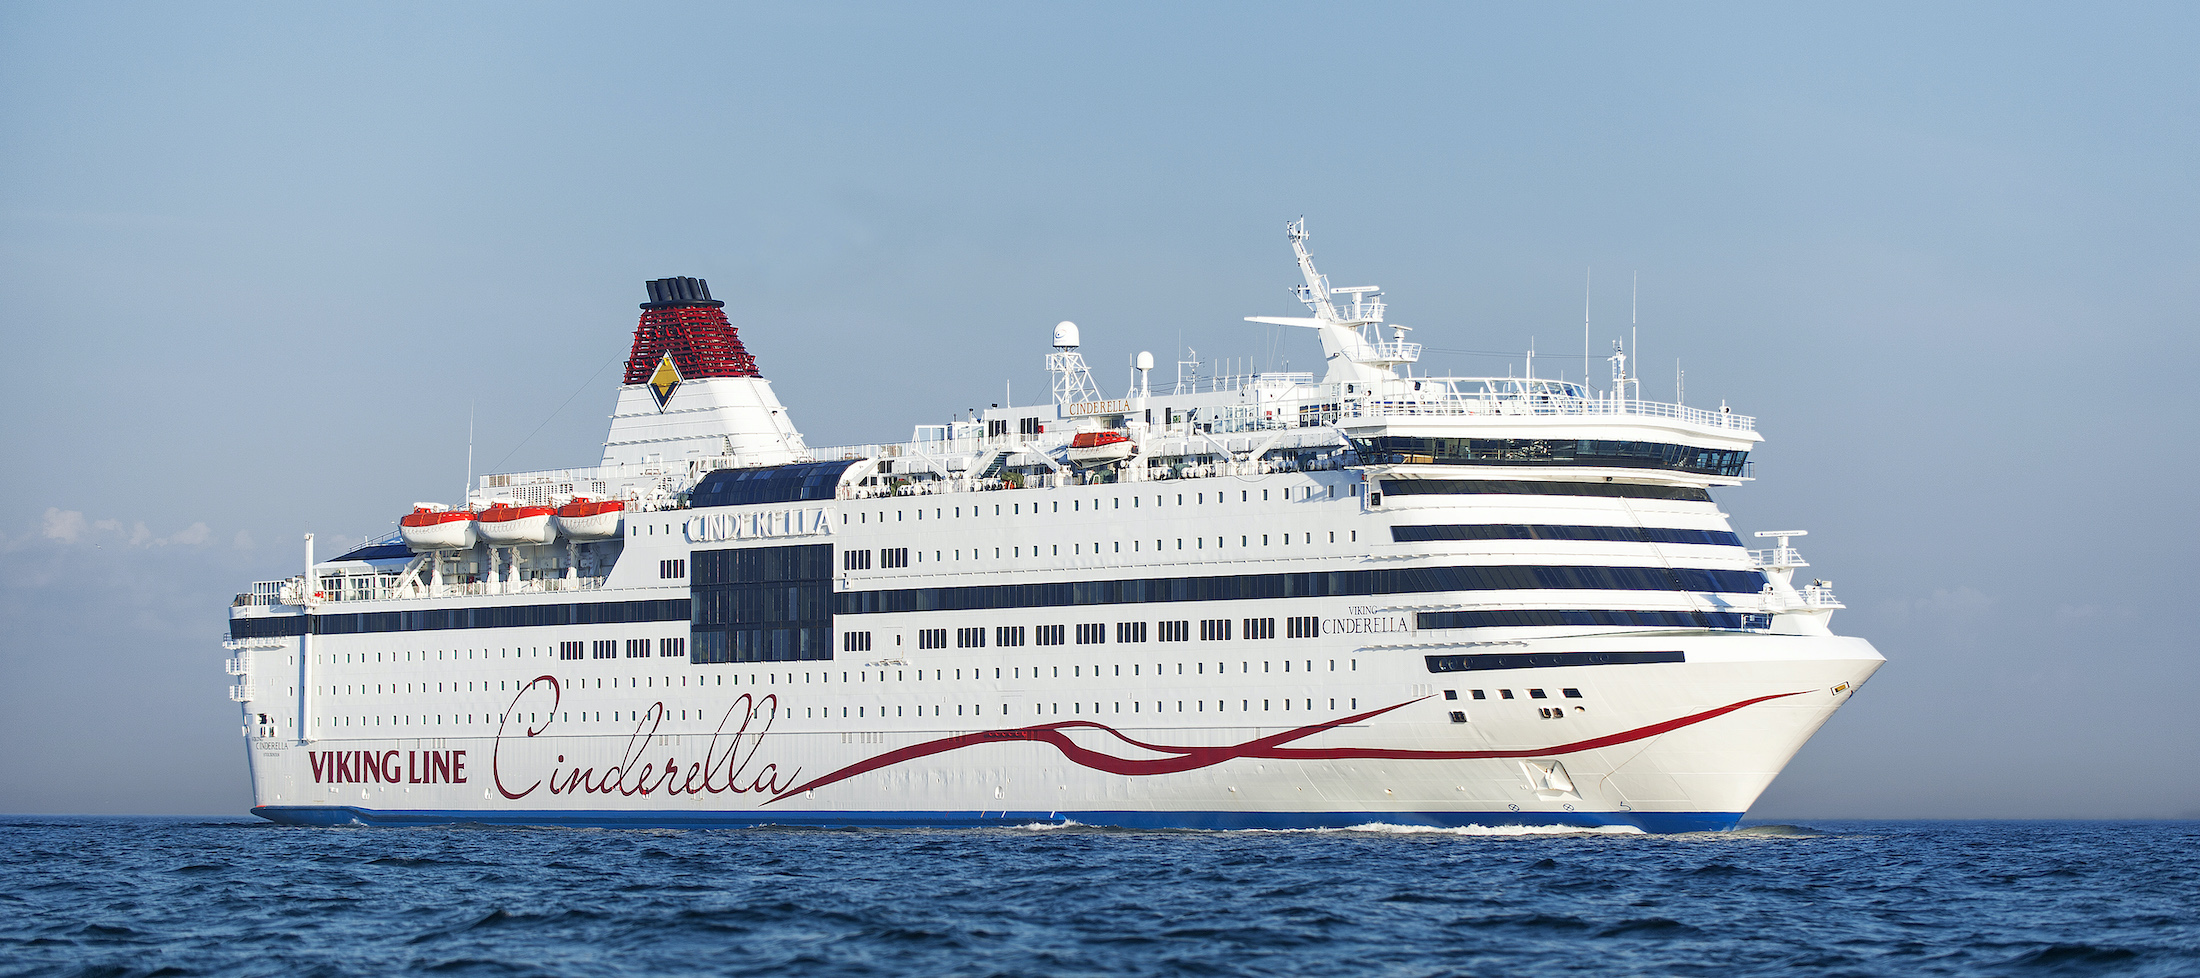 Photo of Viking Line - Cinderella ship